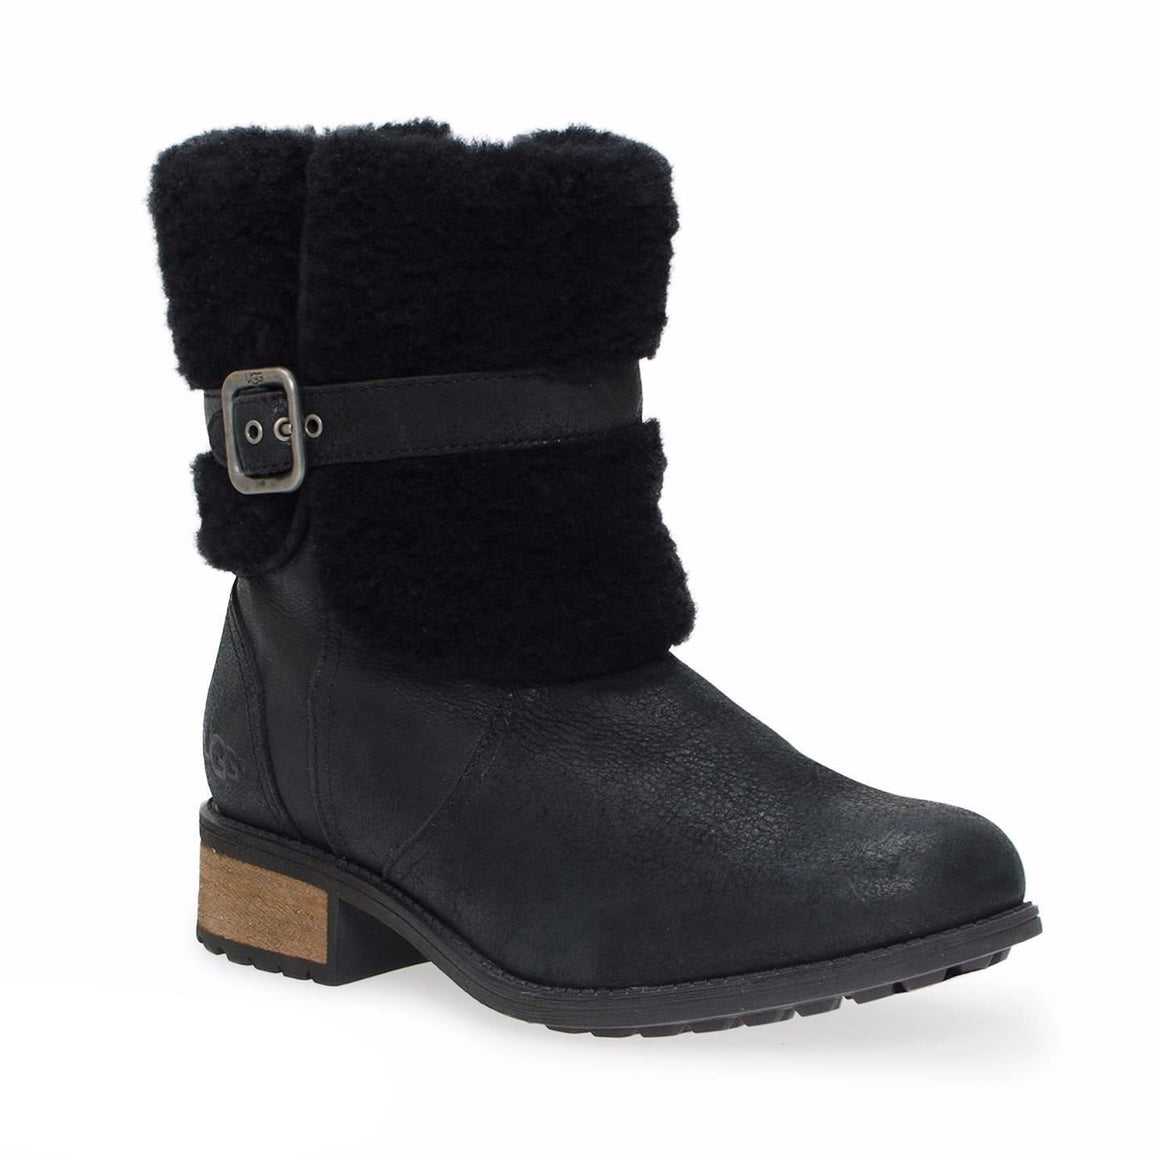 UGG Blayre II Leather Black Boots